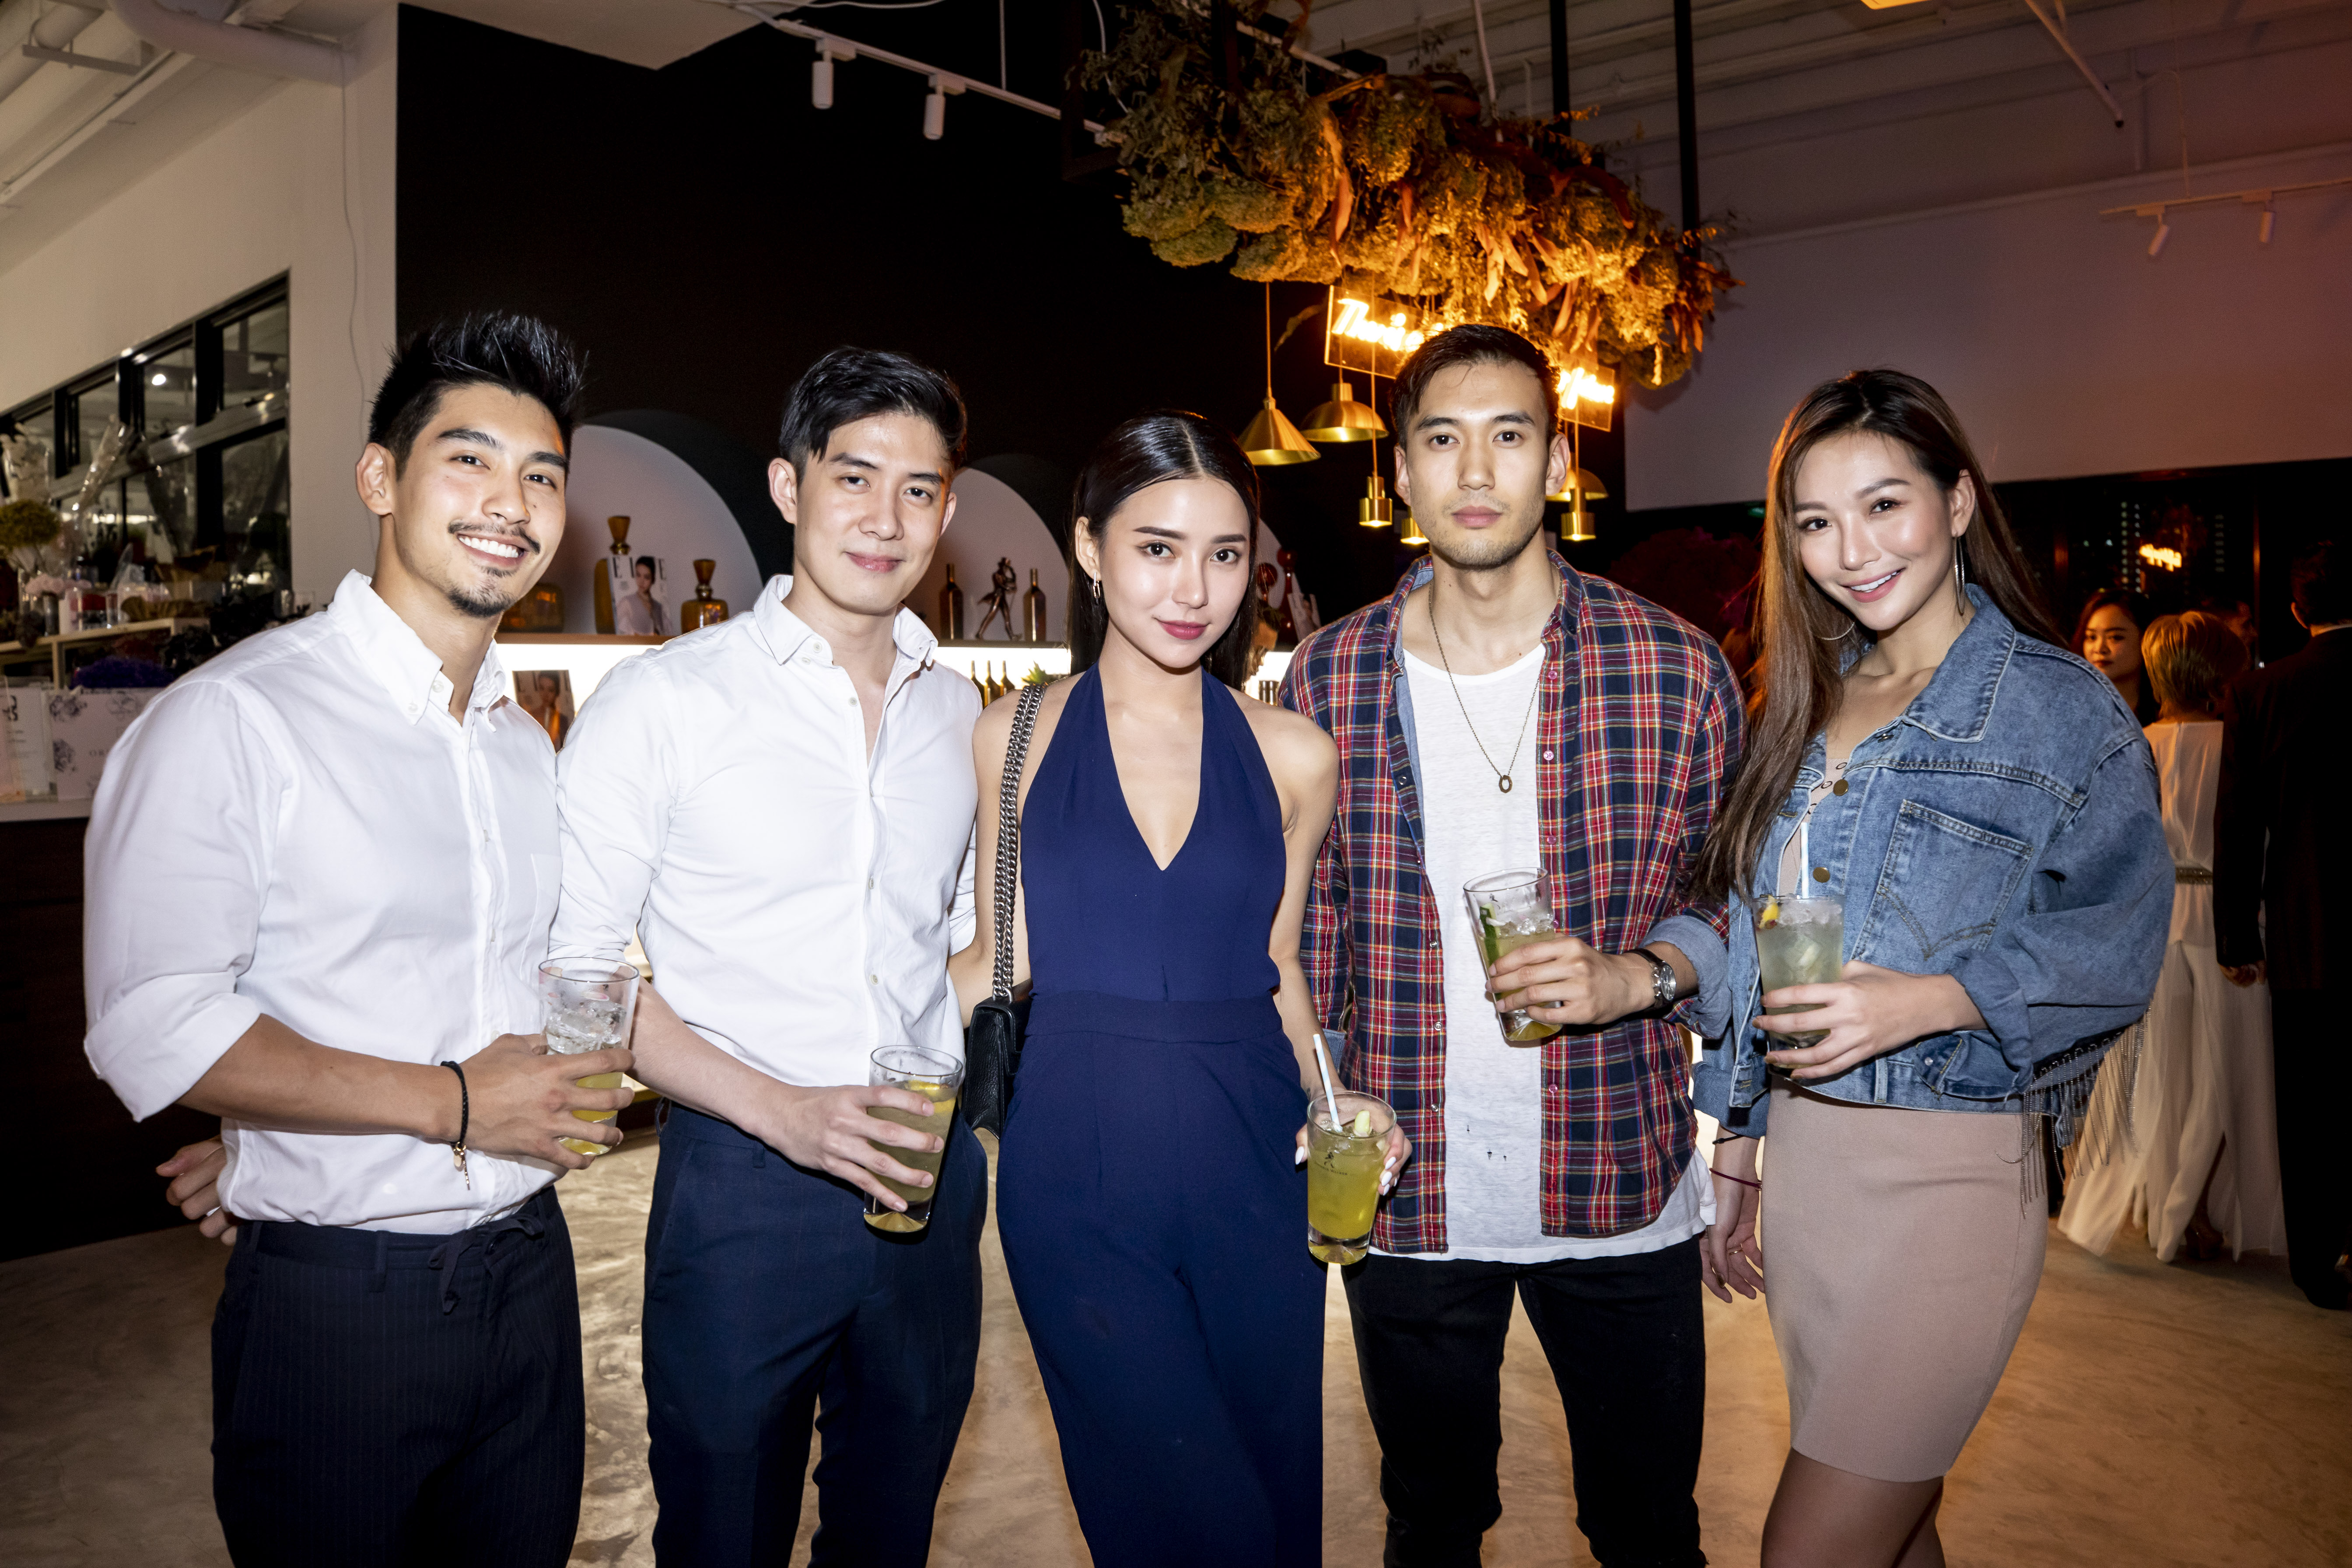 Robin Tiang, Daryl Ong, Venice Min, Alexander Yue and Abby Som